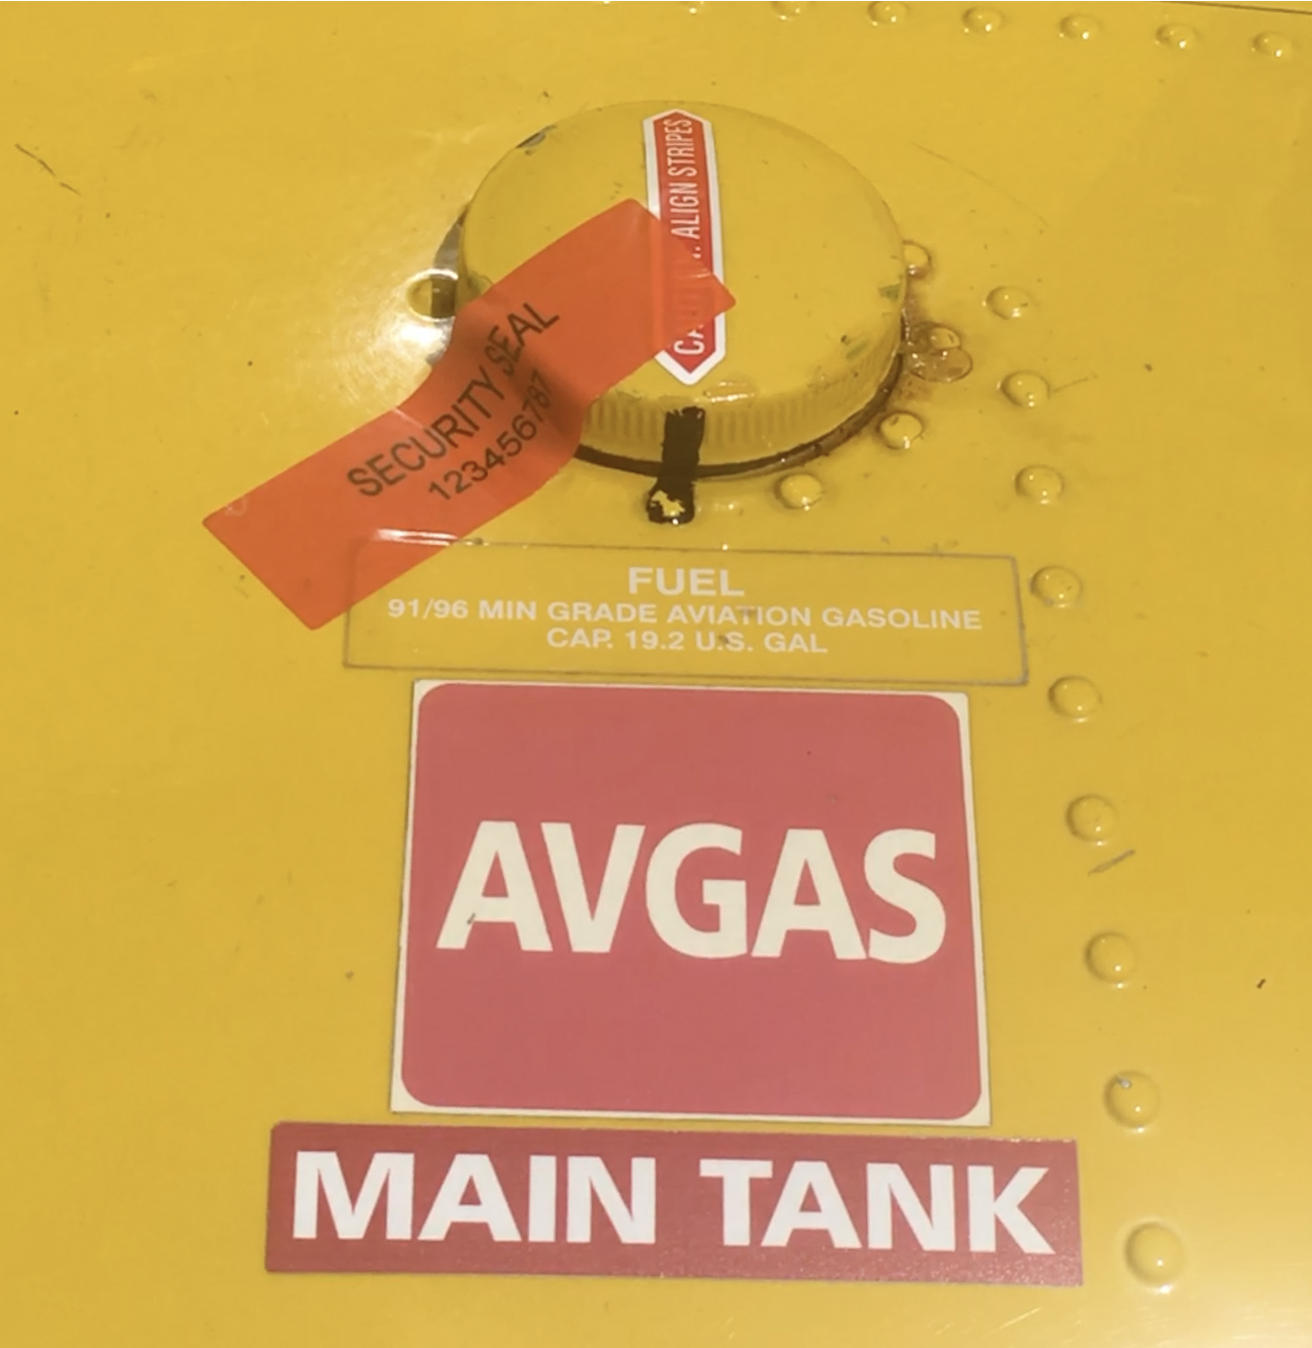 Tamper Evident Security Label on Helicopter fuel tank